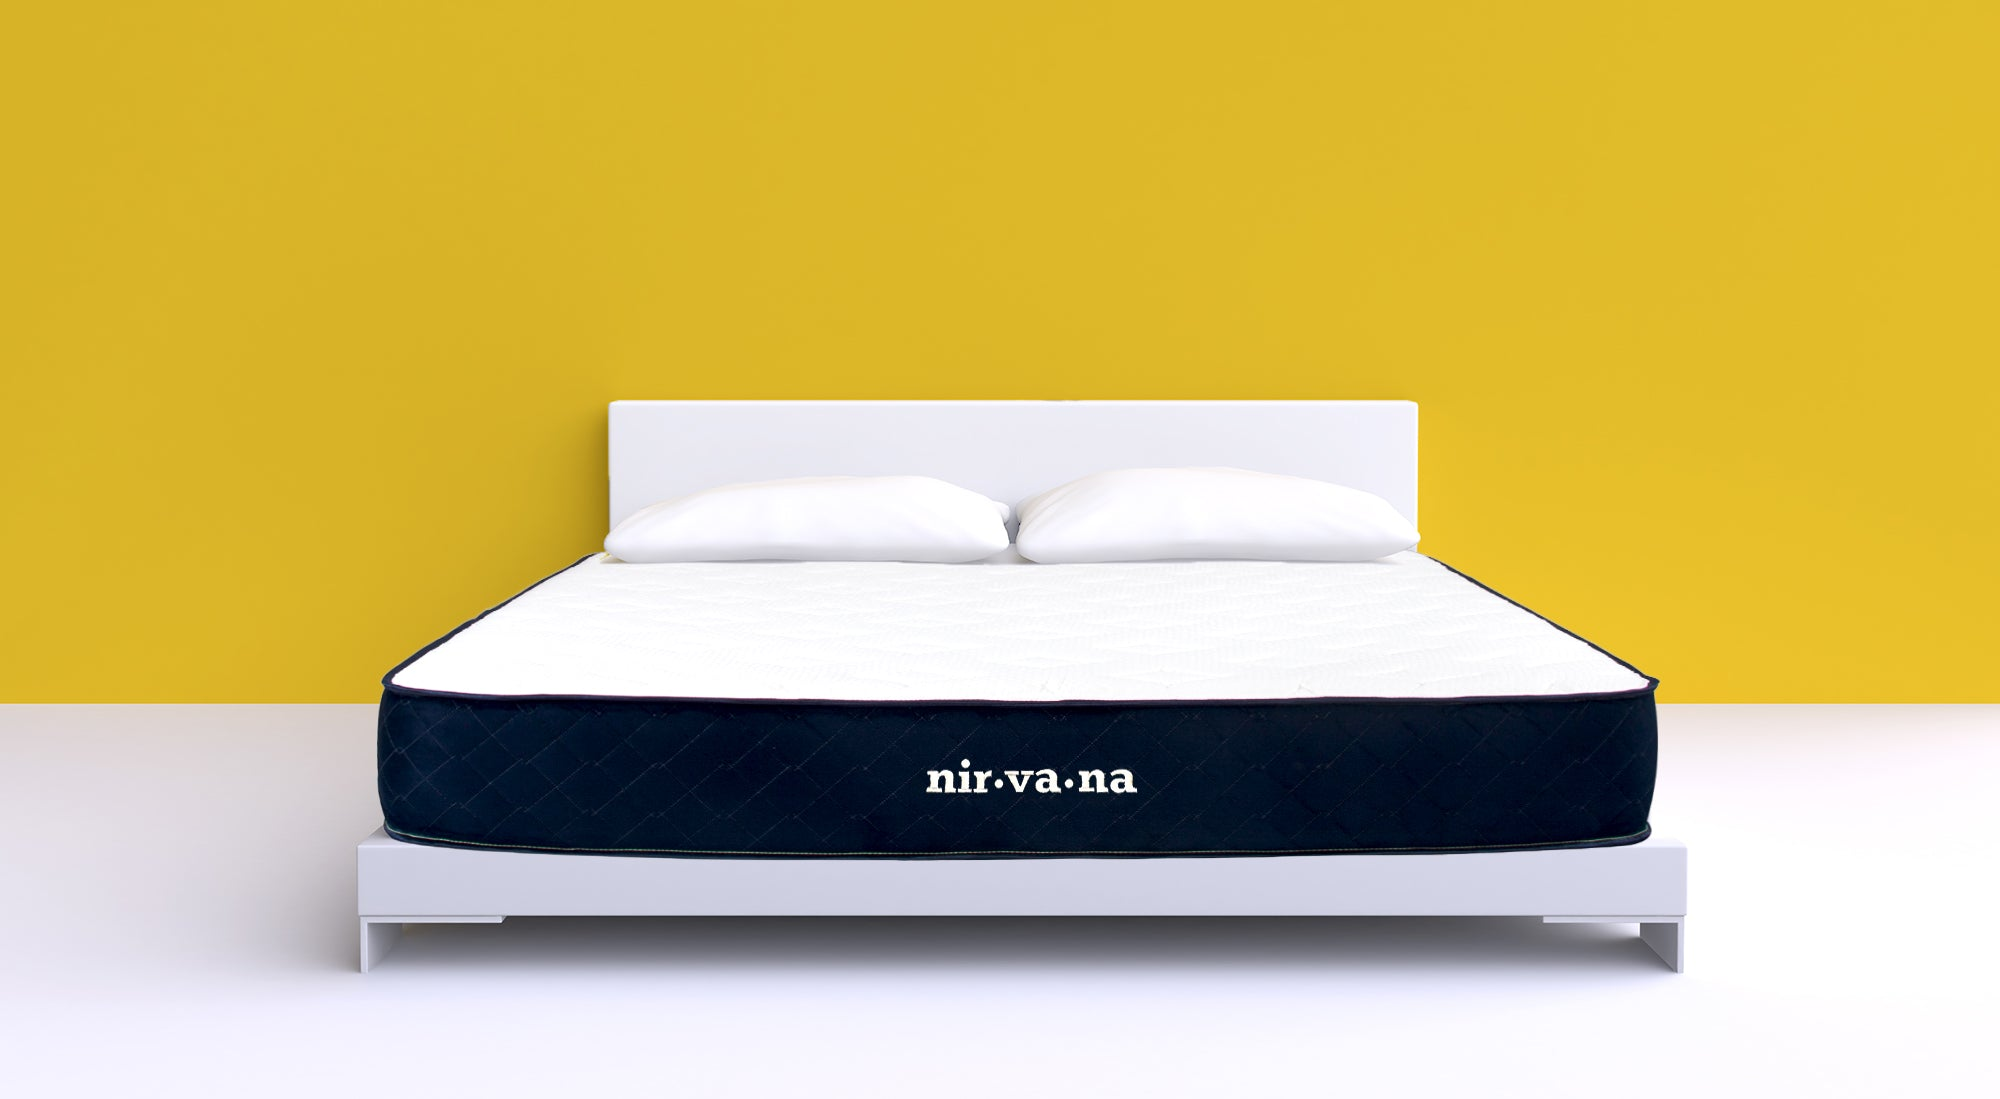 Nirvana Bed - A LUXURY MATTRESS FOR A BUDGET PRICE